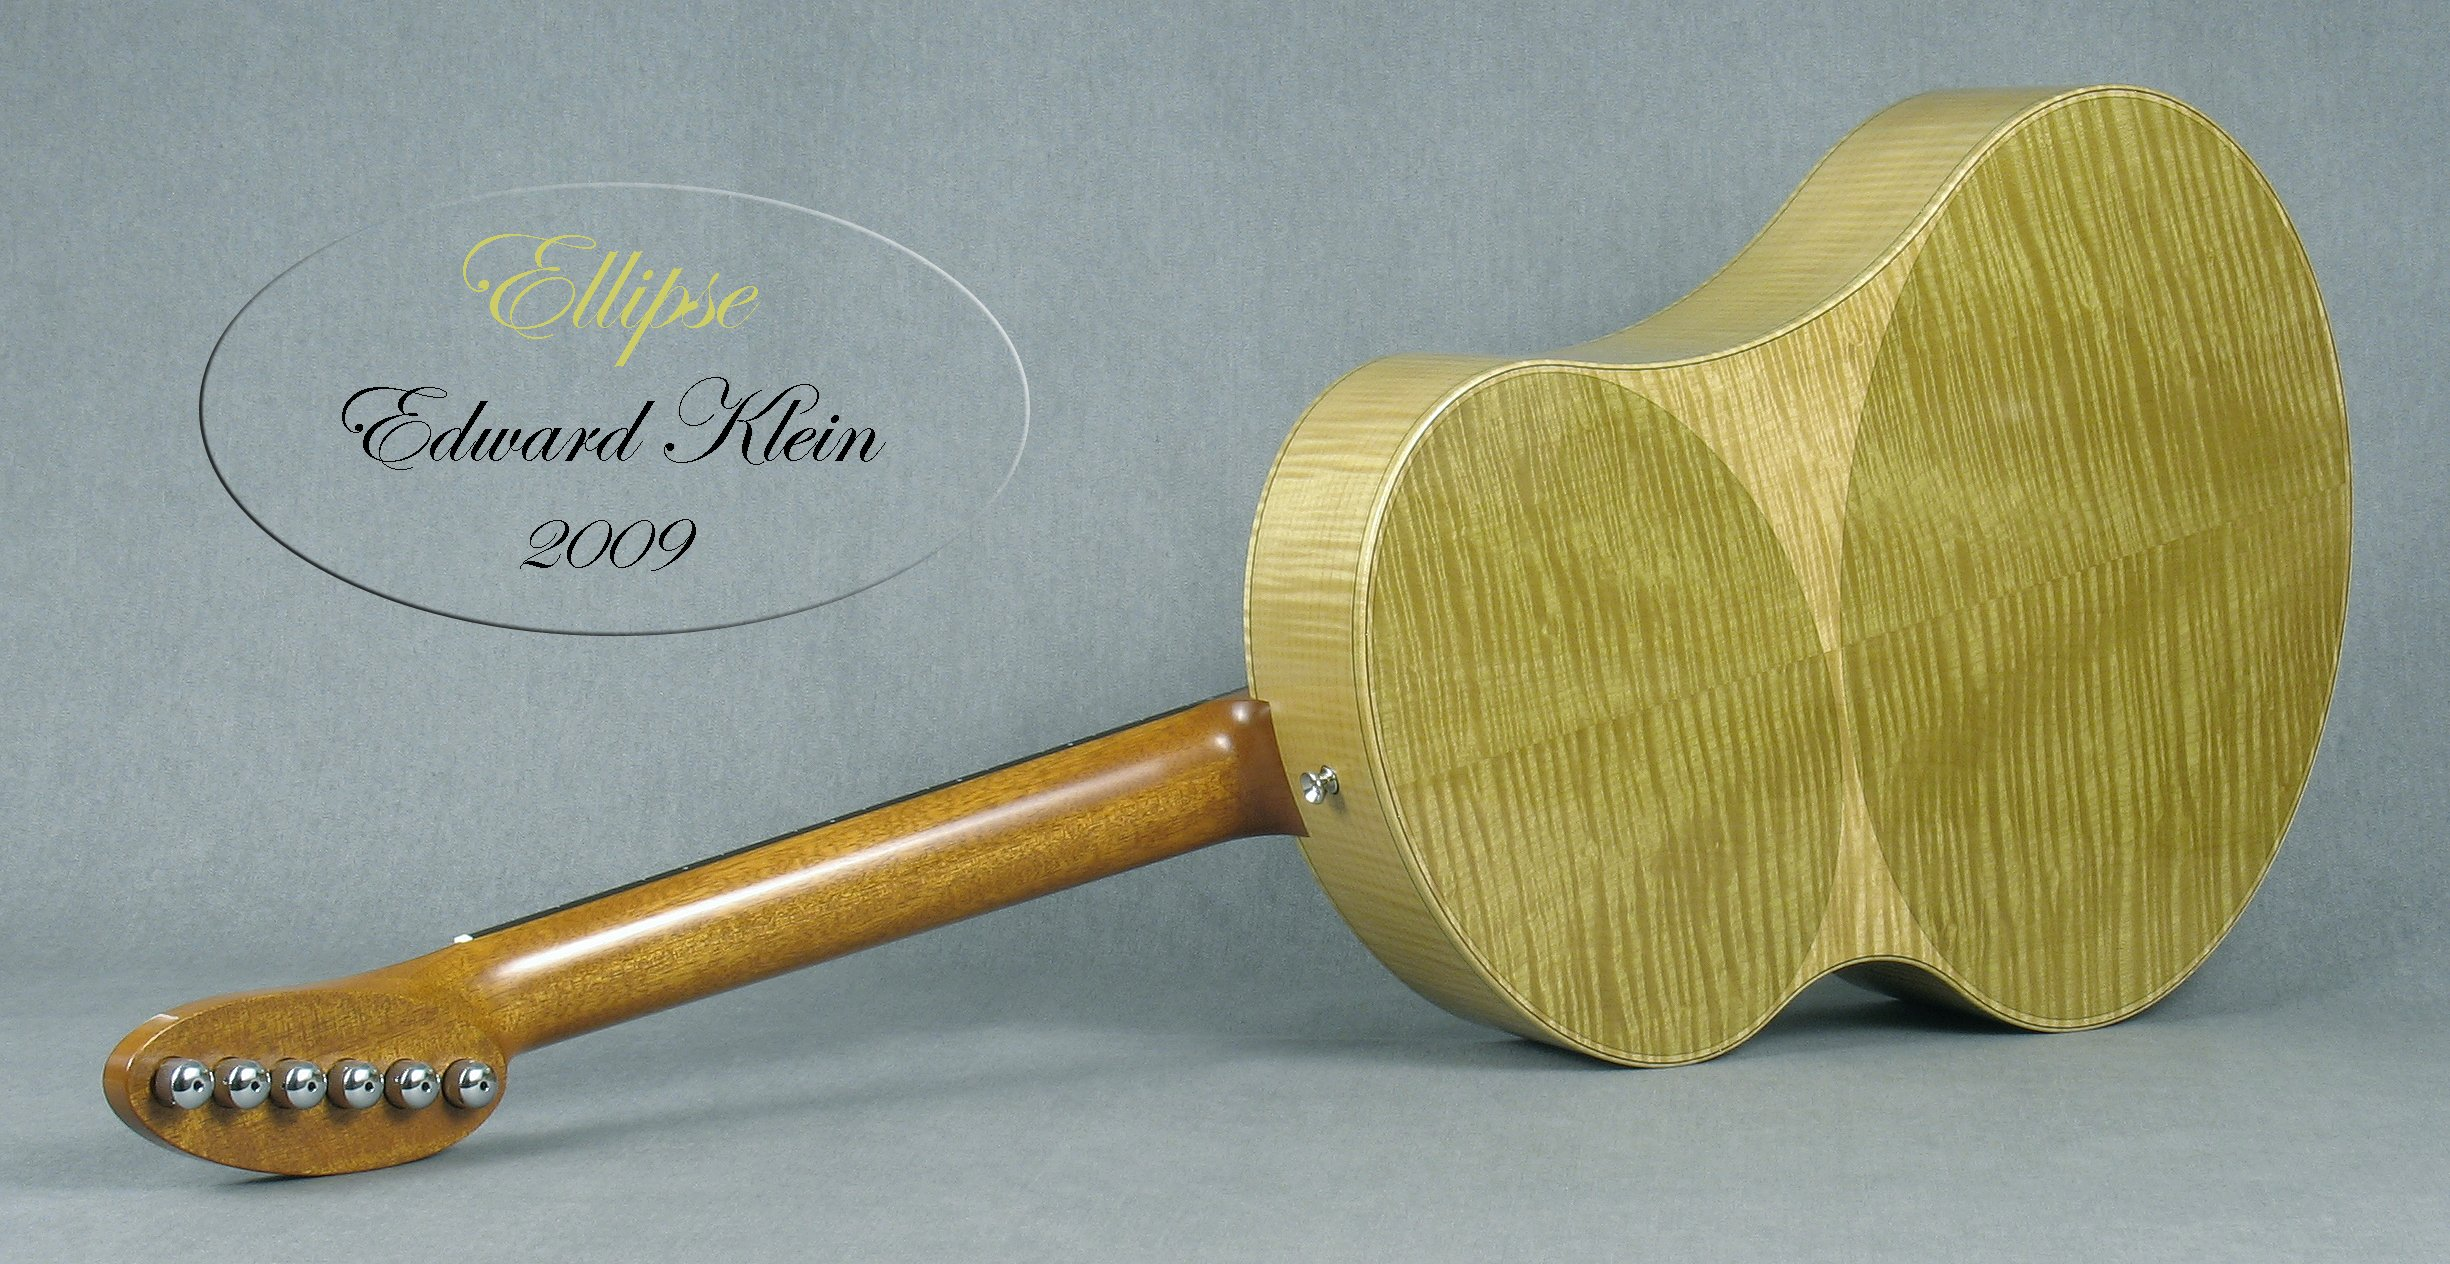 Original Ellipse concept guitar - refer to Ellipse N or Ellipse S as the current models available to order